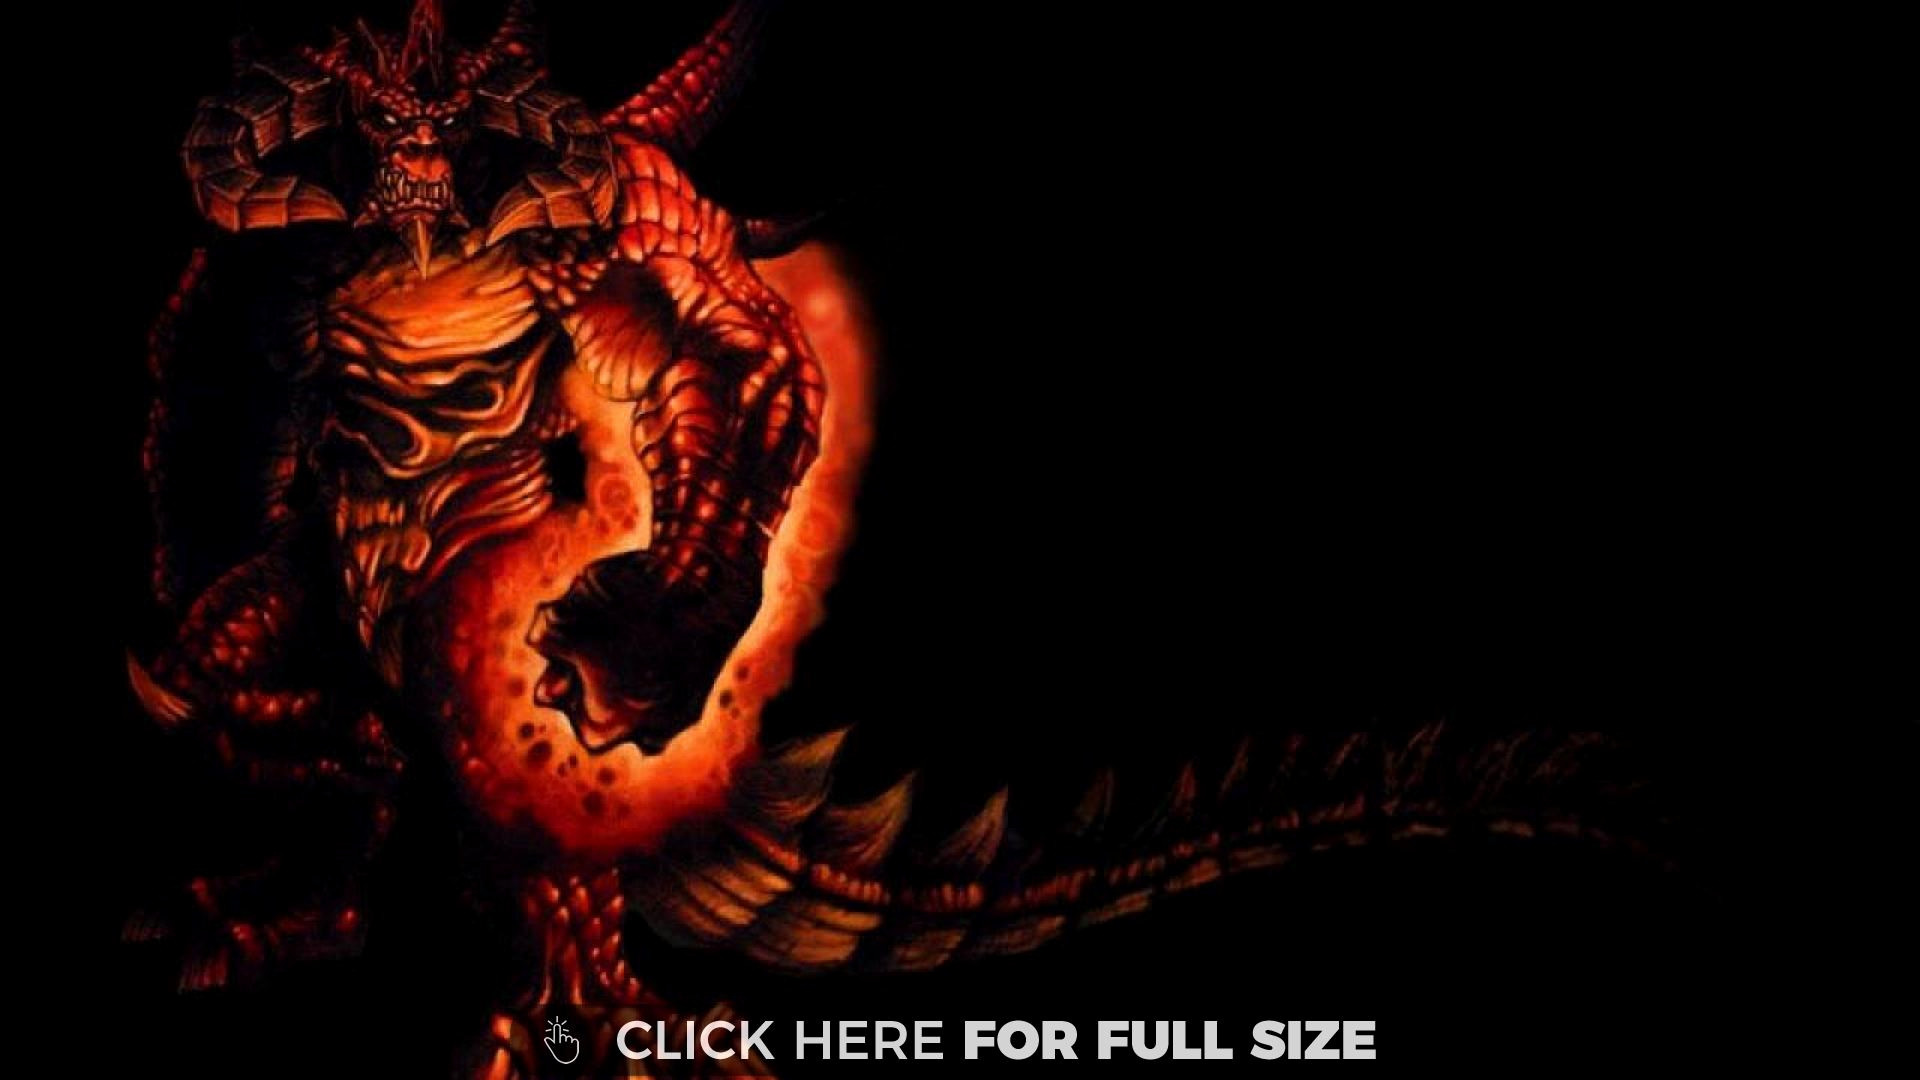 Res: 1920x1080, Diablo 2 Wallpaper – Diablo Wallpapers Photos and Desktop Backgrounds Up to  8k